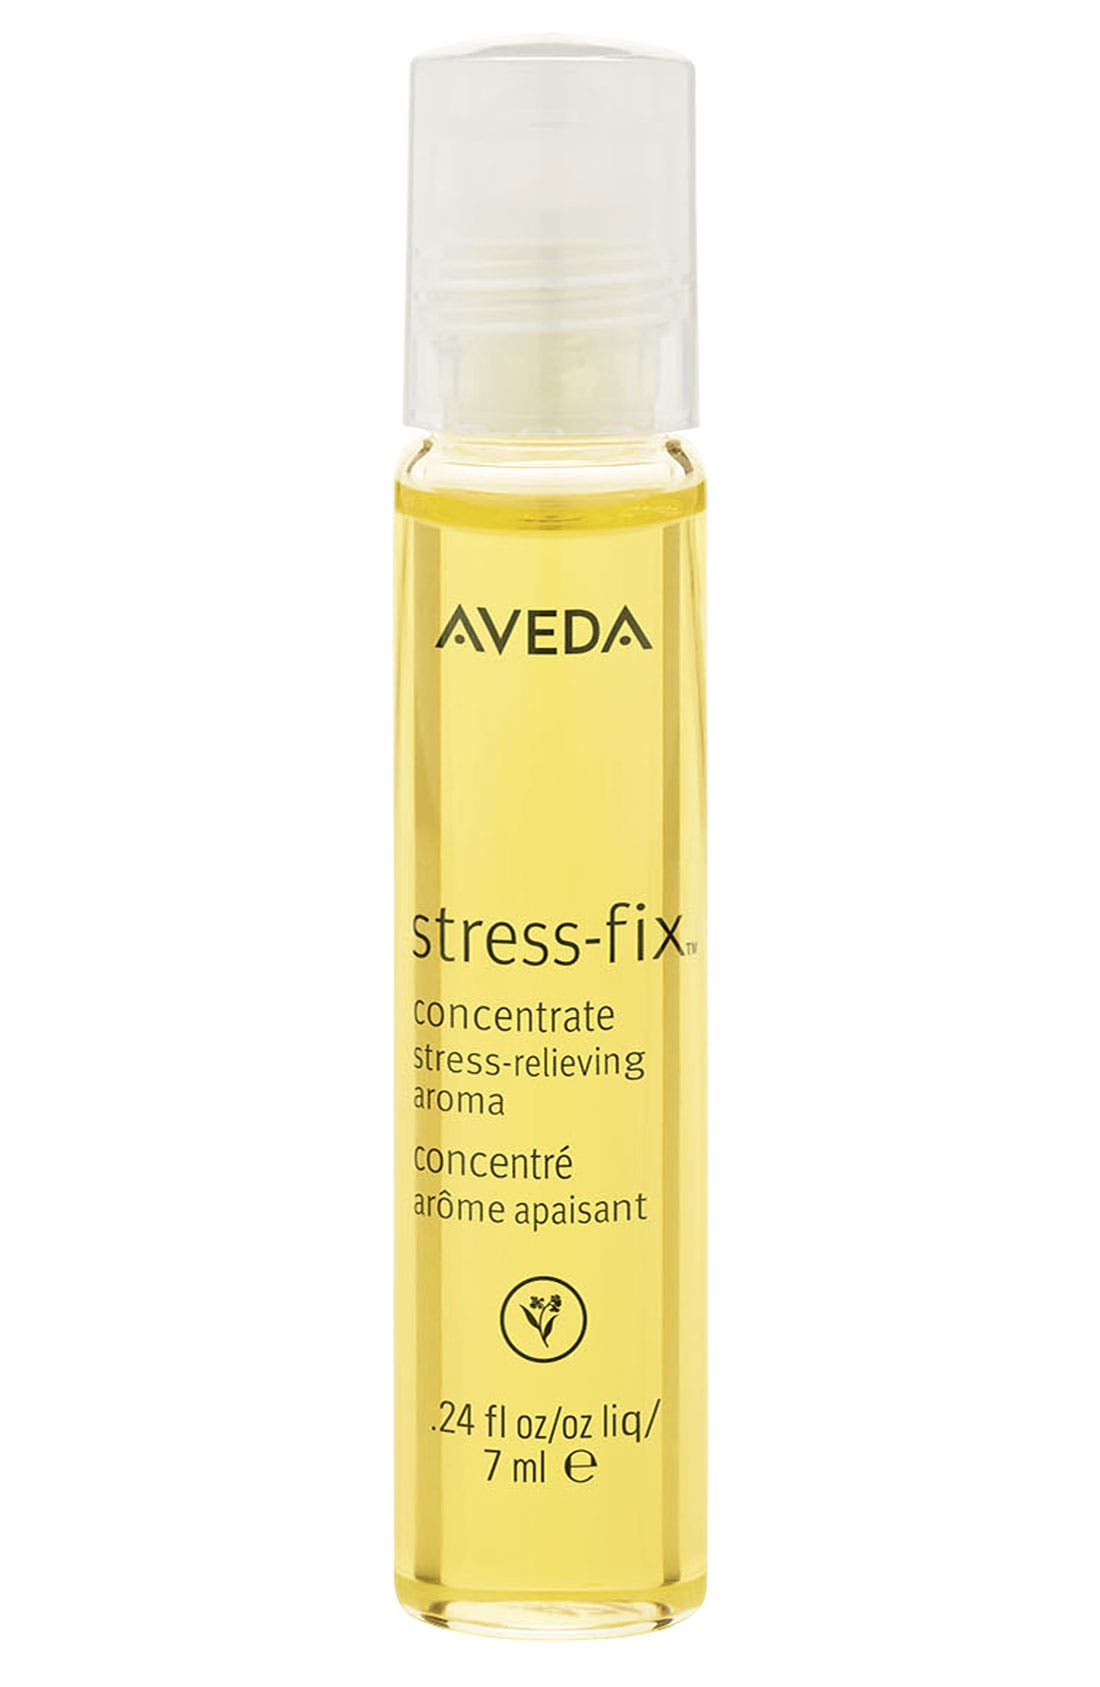 Aveda 'stress-fix™' Concentrate Stress-Relieving Aroma